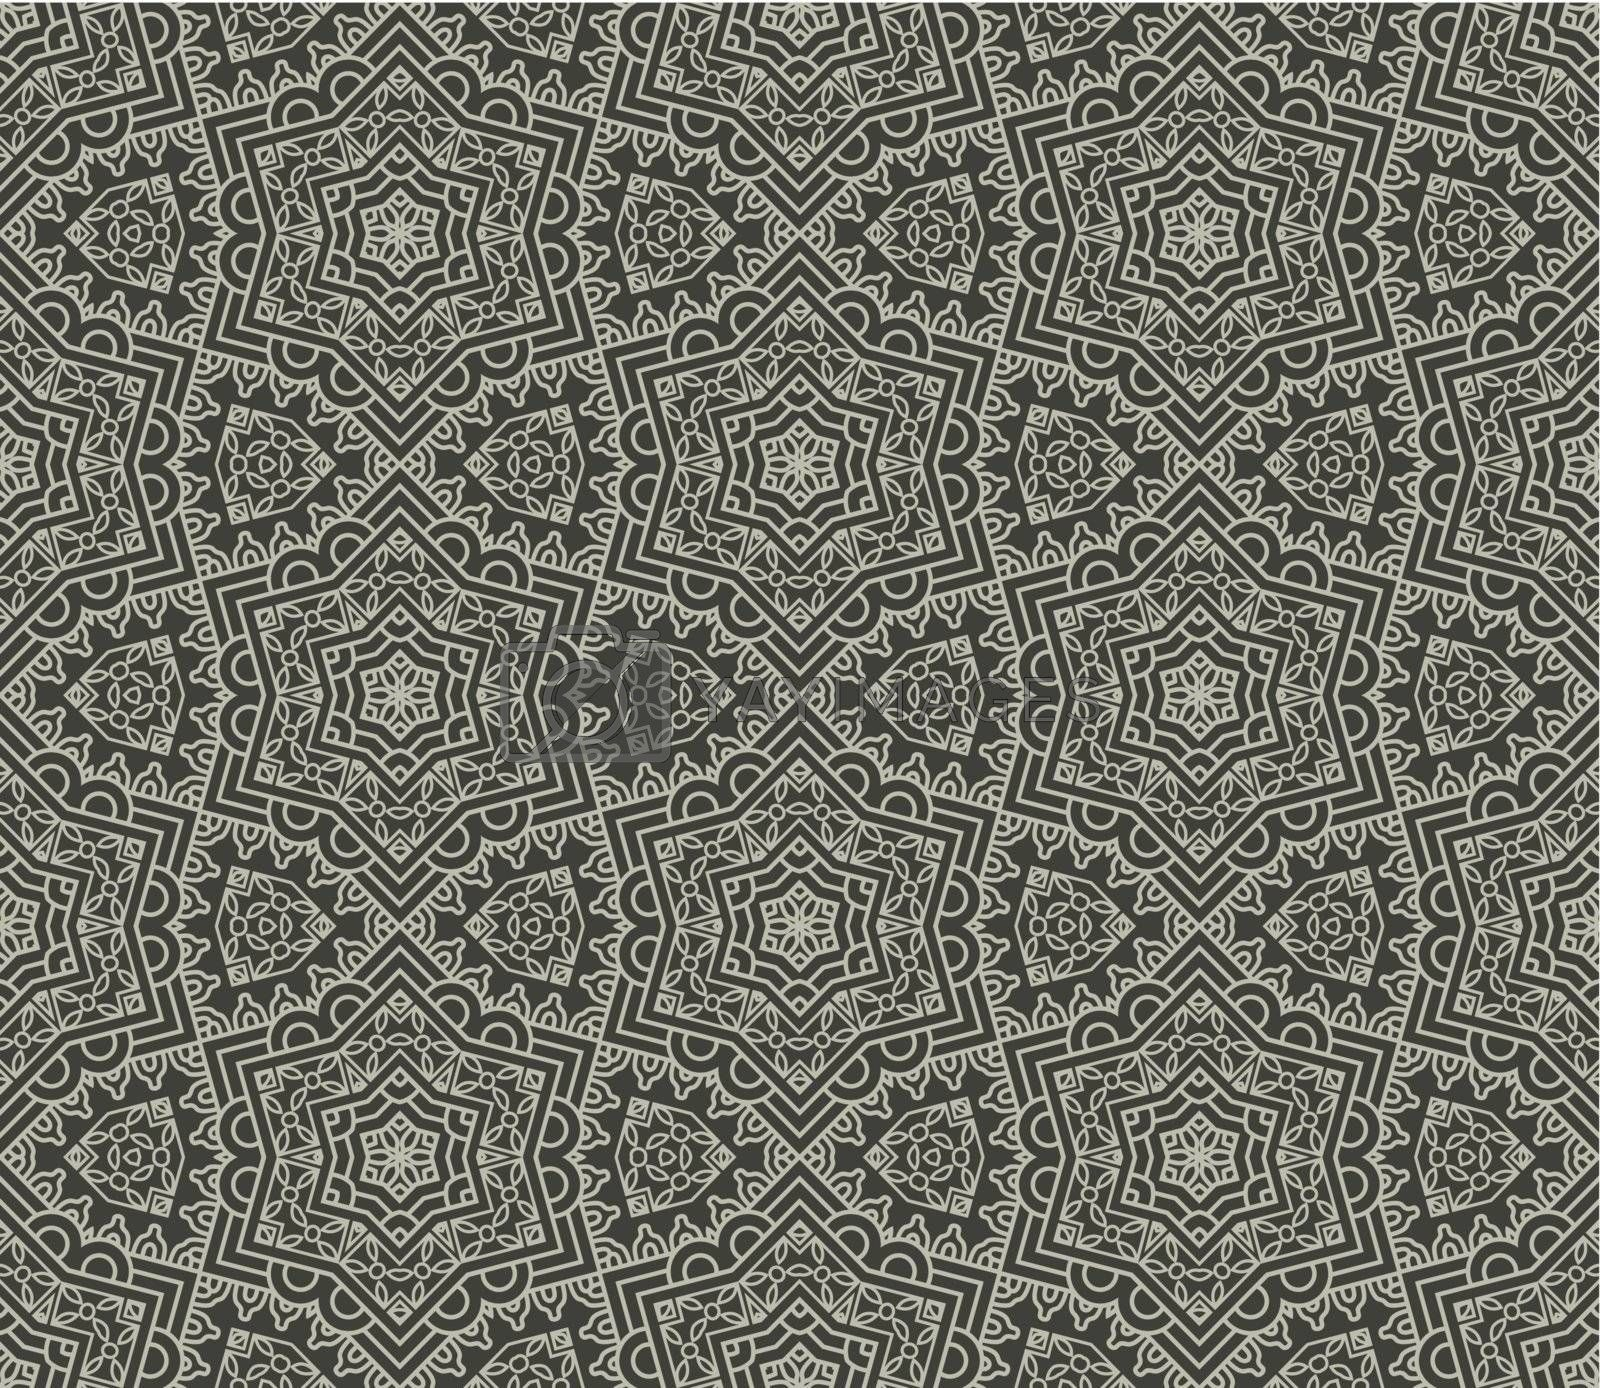 Seamless wallpaper with aztec ornament in gray colors